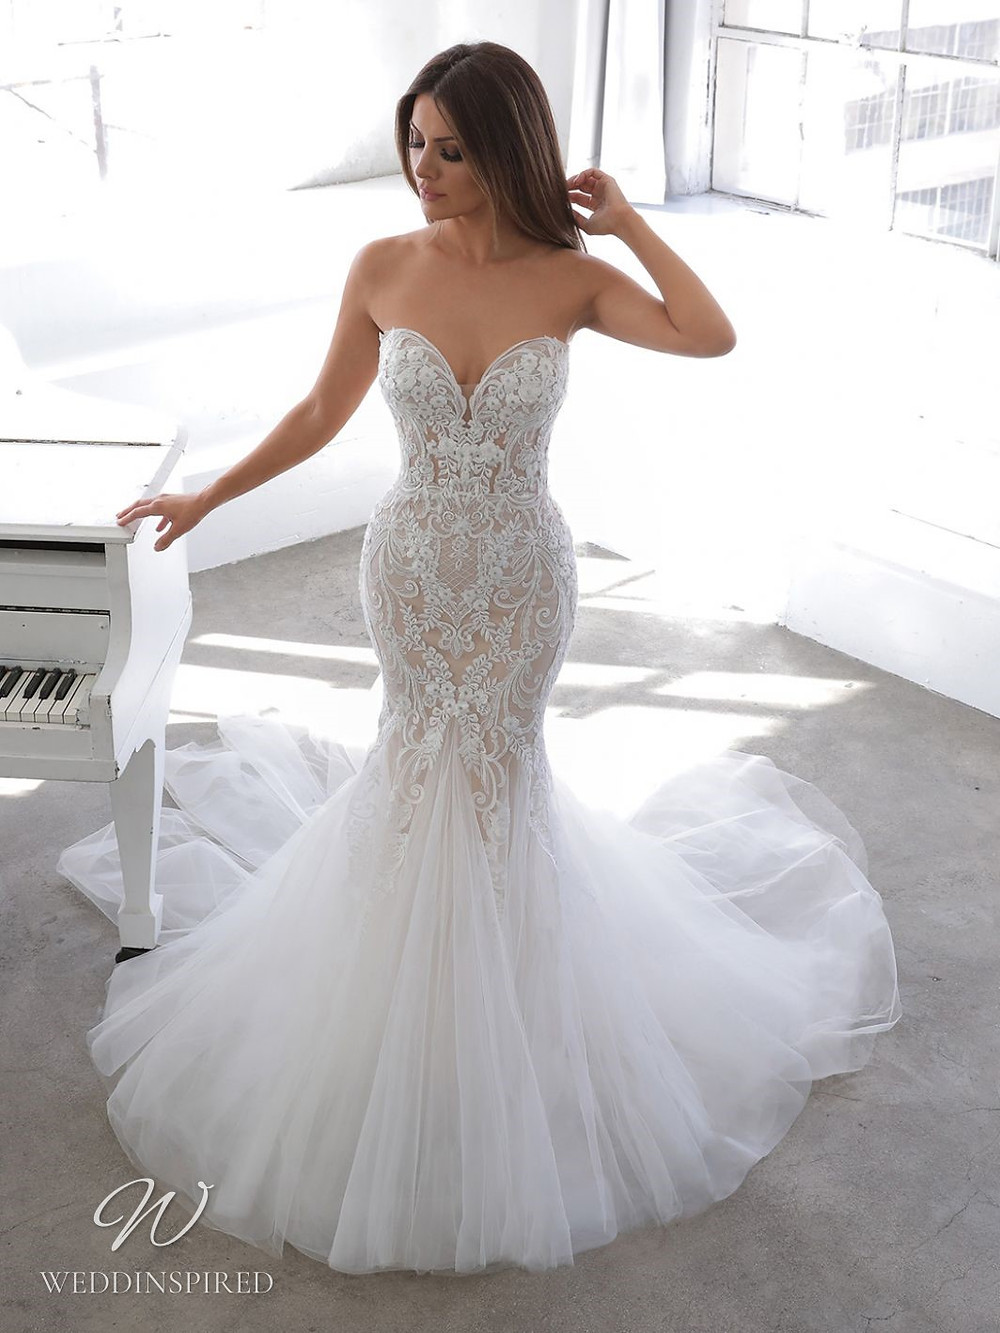 A Blue by Enzoani 2021 strapless lace and tulle mermaid wedding dress